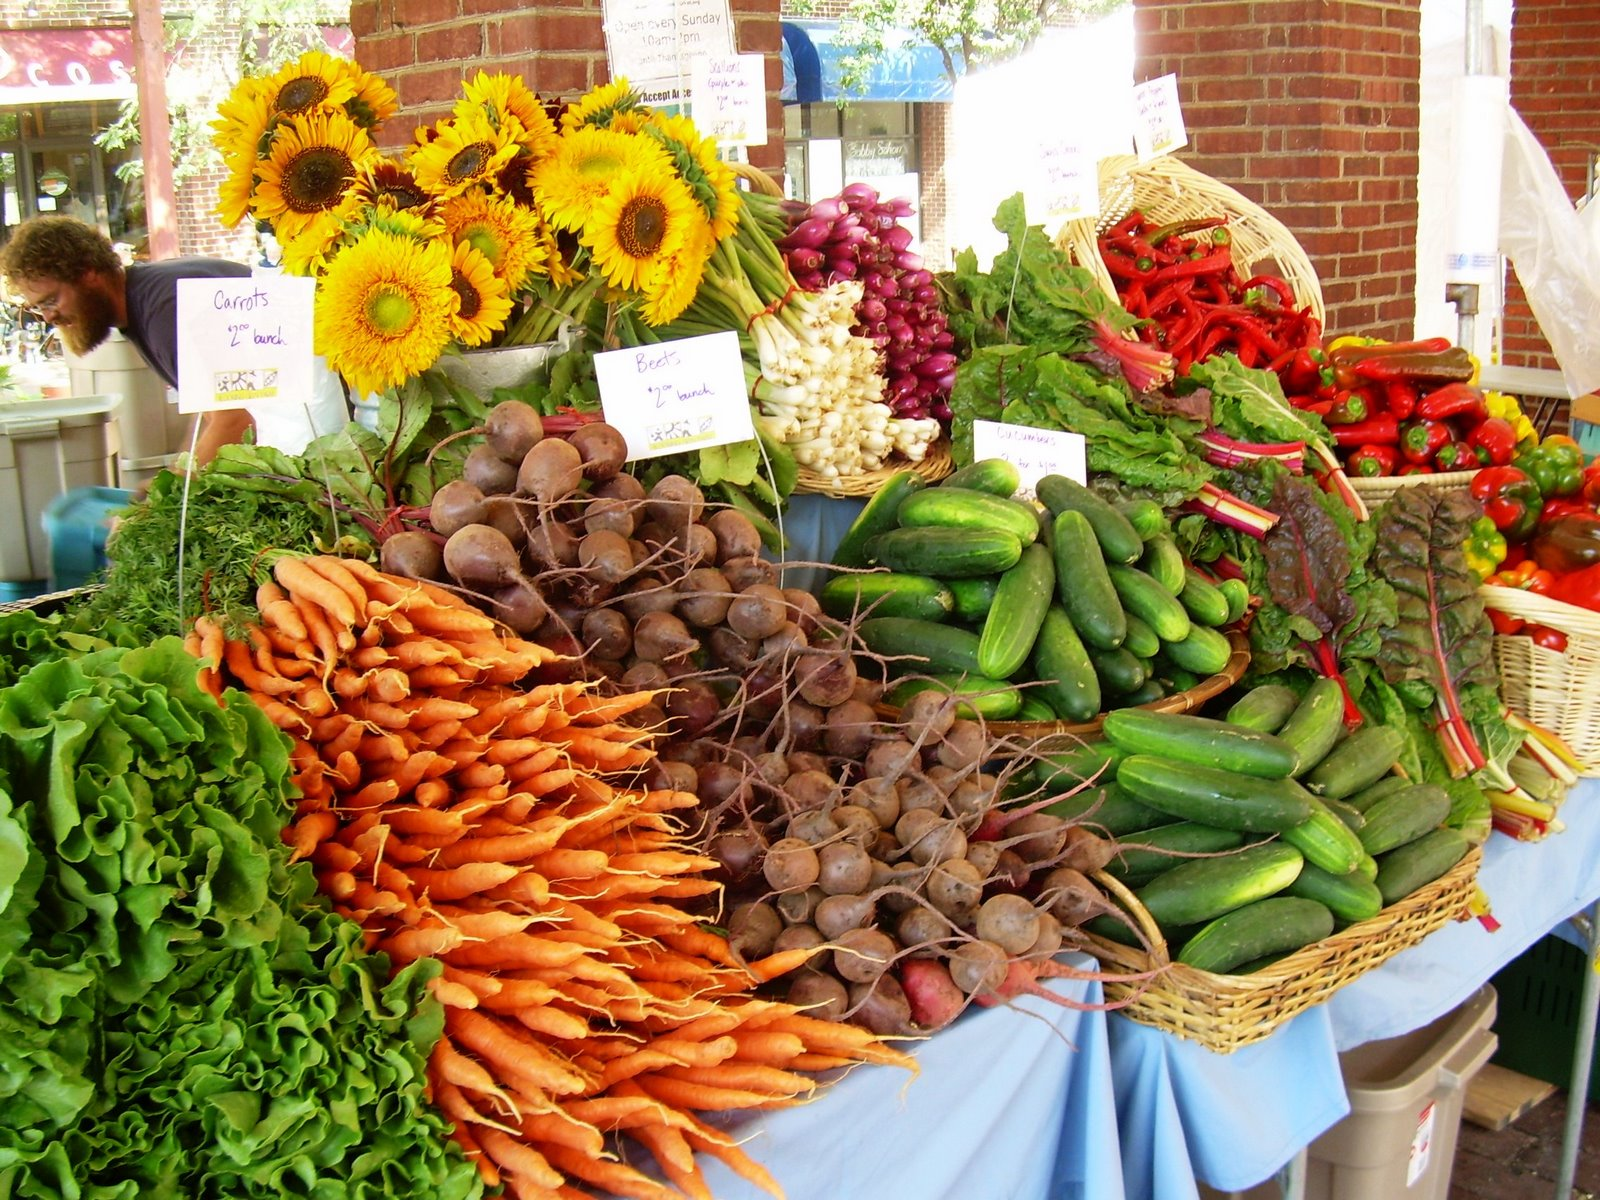 Stop by the Farmer's Market this Saturday the 26th from 9am-1pm